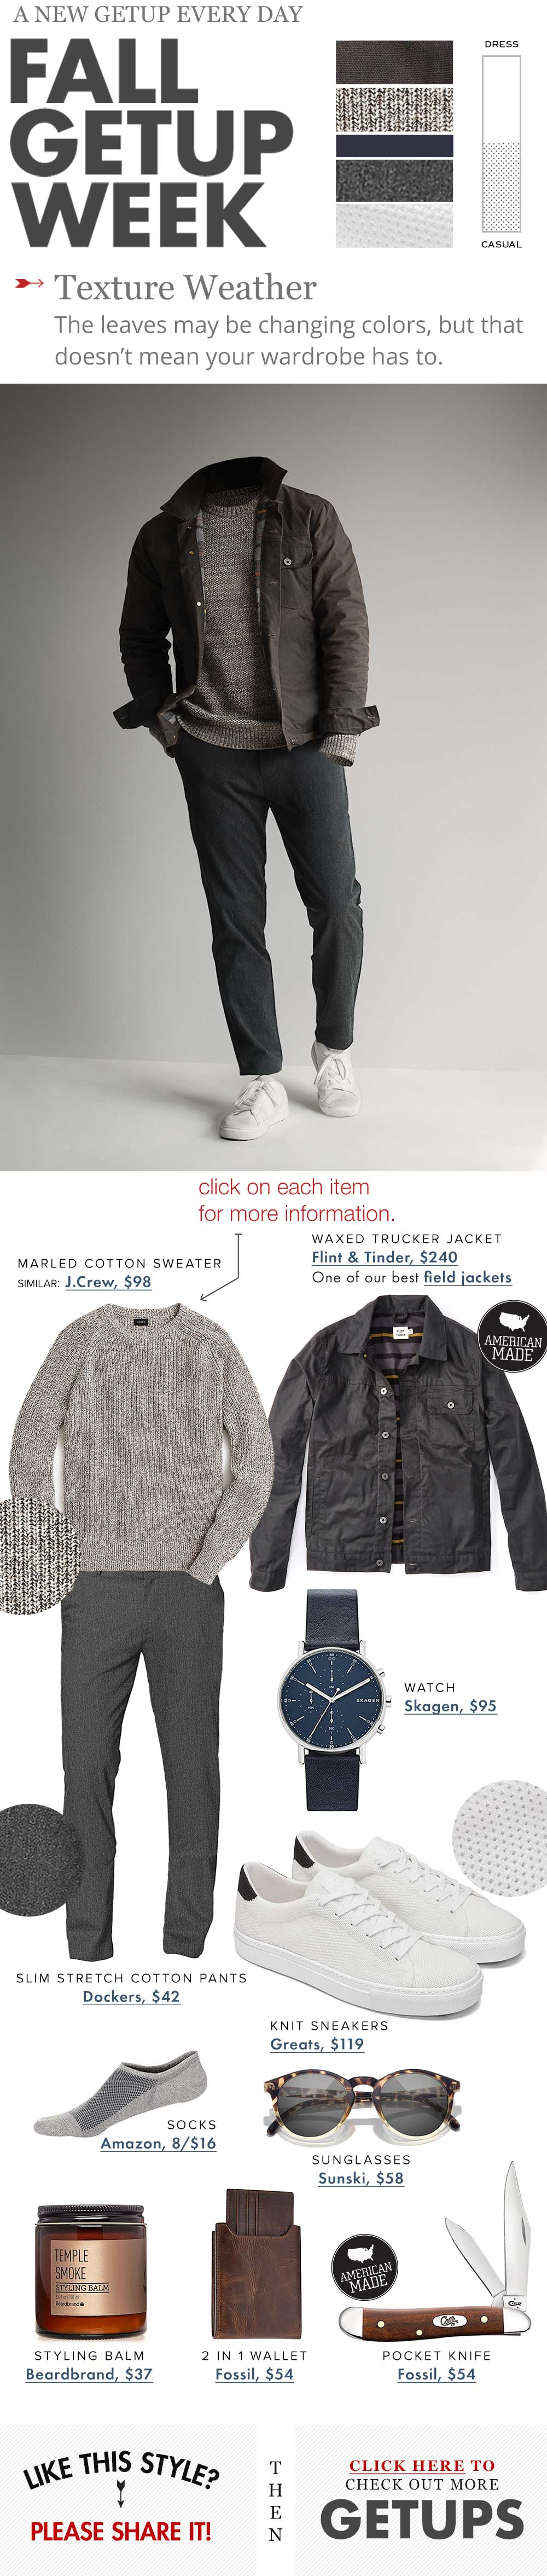 mens fashion fall texture outfit